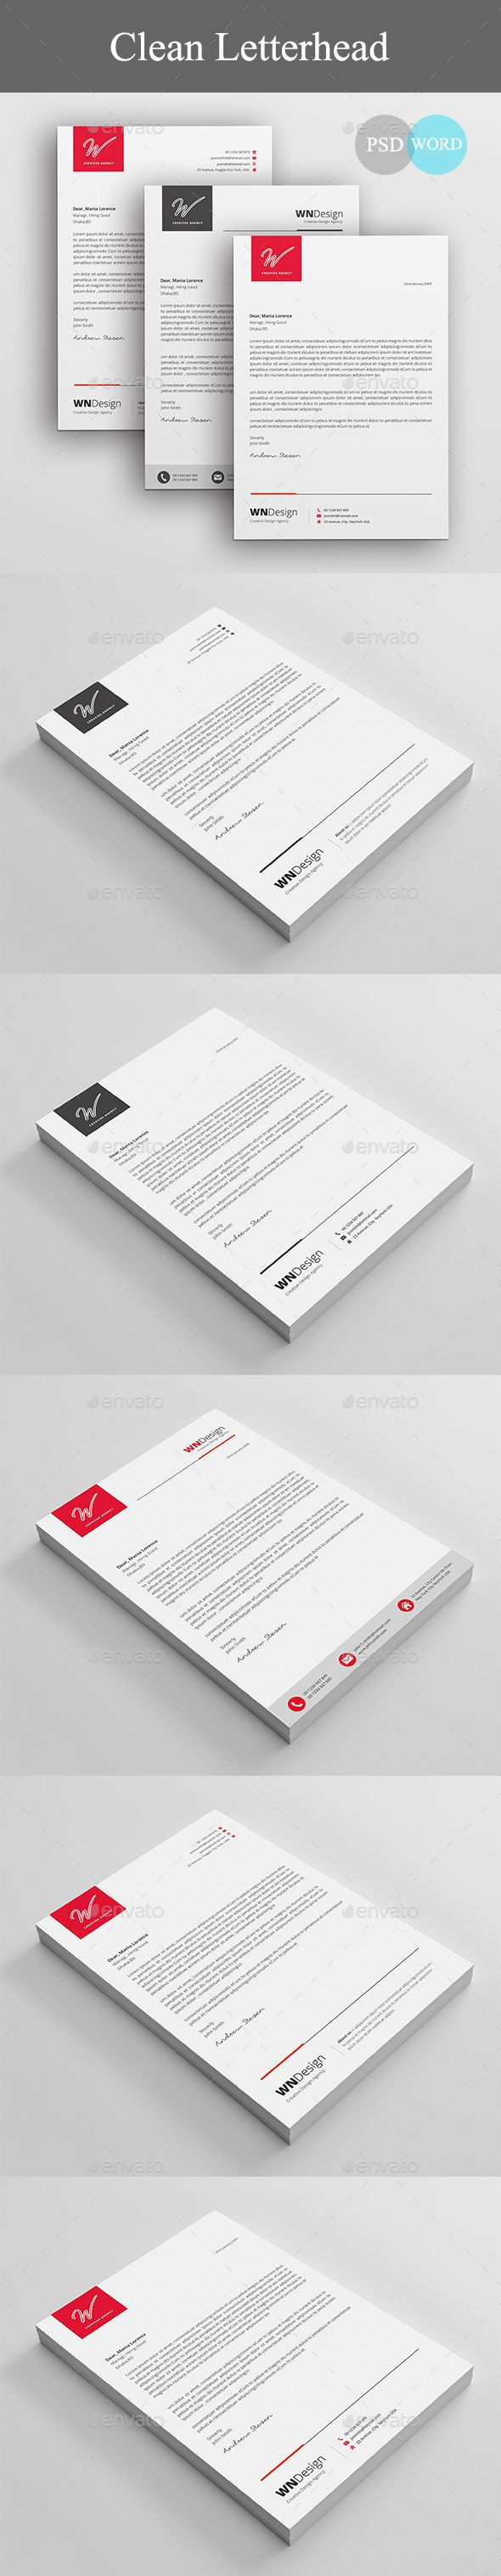 Corporate Letterhead Design Template - Stationery Print Letterhead Design Template PSD. Download here: https://graphicriver.net/item/letterhead/19420497?ref=yinkira